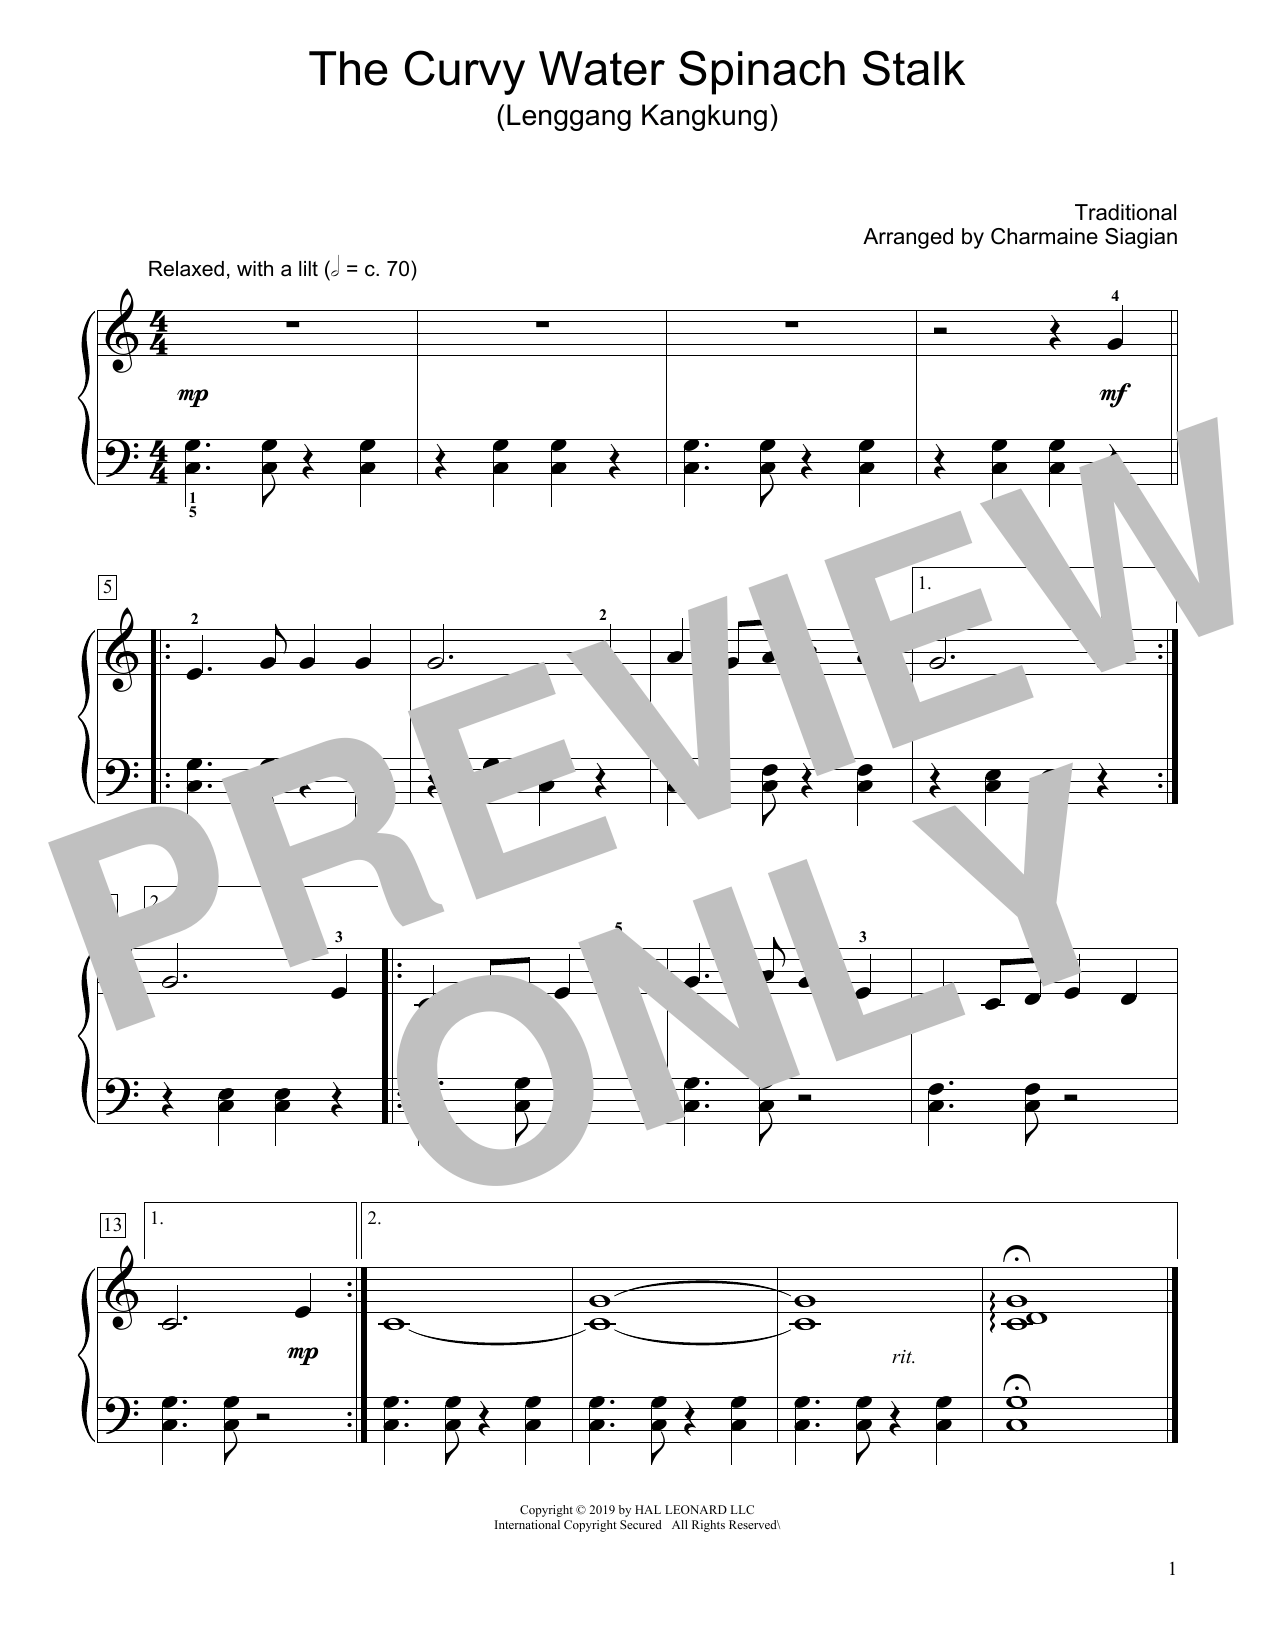 Traditional The Curvy Water Spinach Stalk (Lenggang Kangkung) (arr. Charmaine Siagian) sheet music notes and chords. Download Printable PDF.